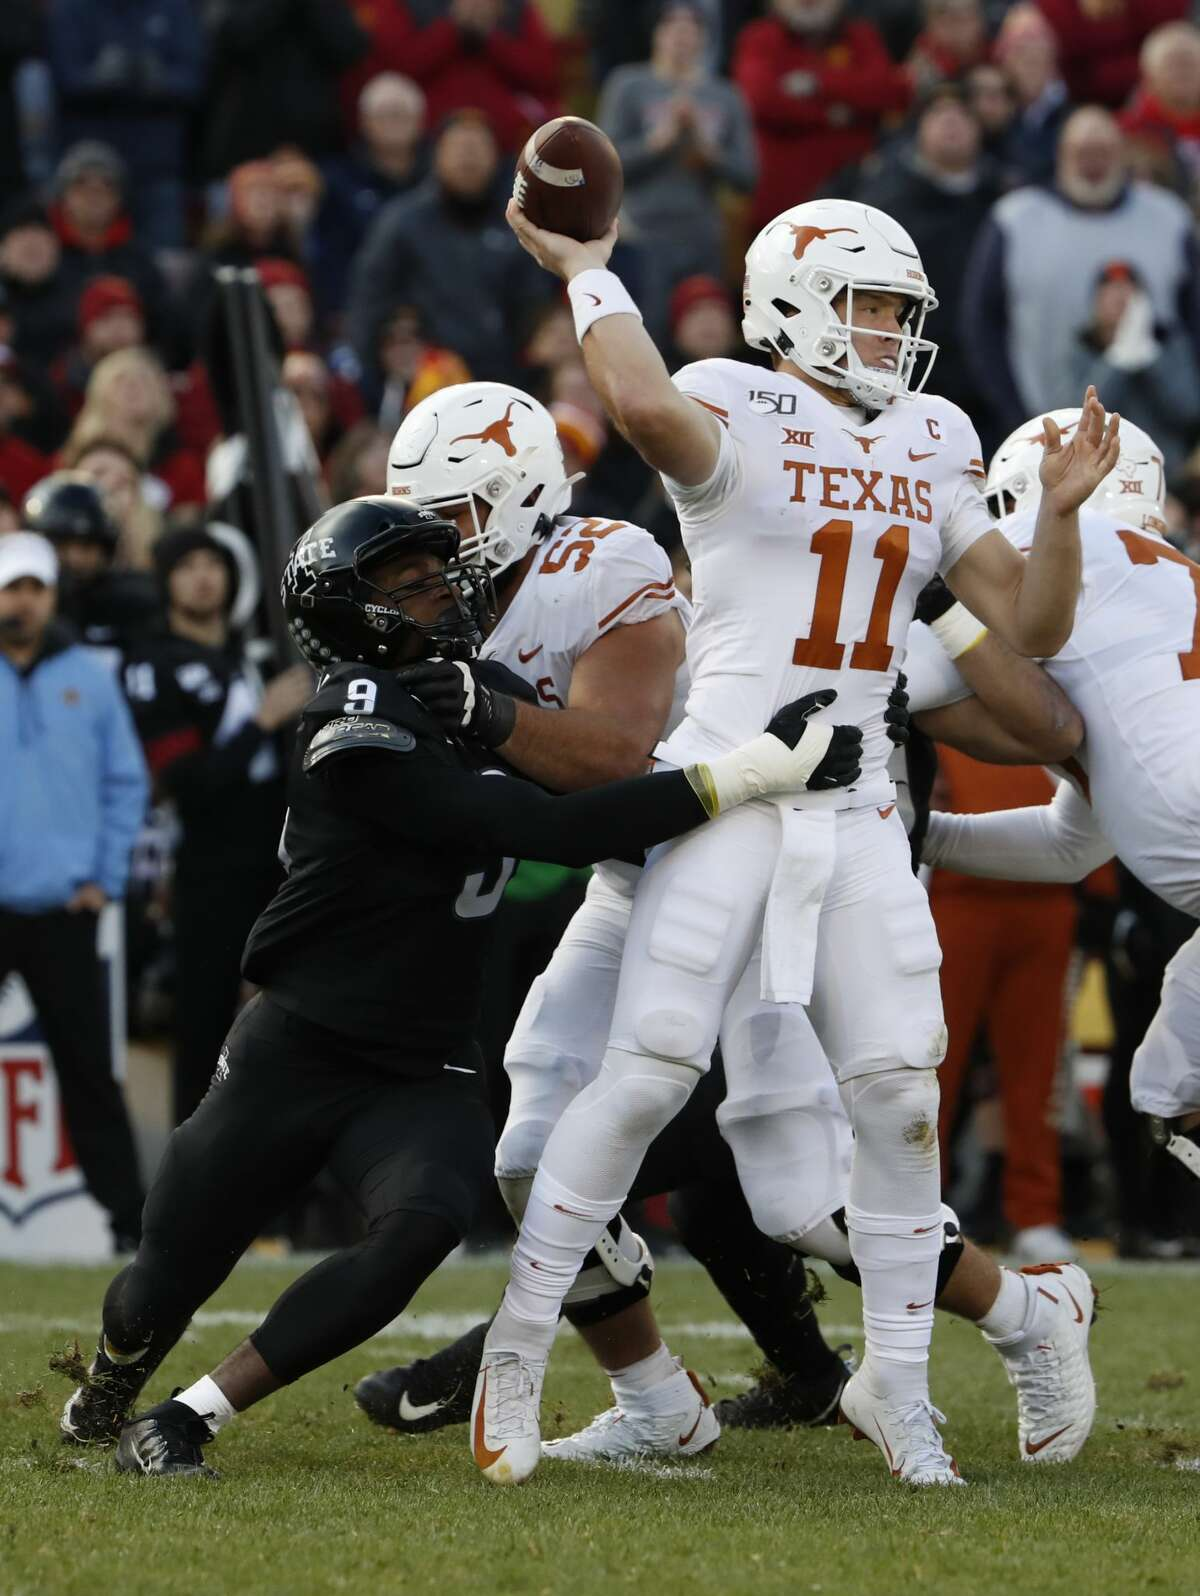 AMES, IA - NOVEMBER 16: Linebacker Will McDonald #9 of the Iowa State Cyclones puts pressure on quarterback Sam Ehlinger #11 of the Texas Longhorns as offensive lineman Samuel Cosmi #52 of the Texas Longhorns blocks in the first half of play at Jack Trice Stadium on November 16, 2019 in Ames, Iowa. (Photo by David Purdy/Getty Images)